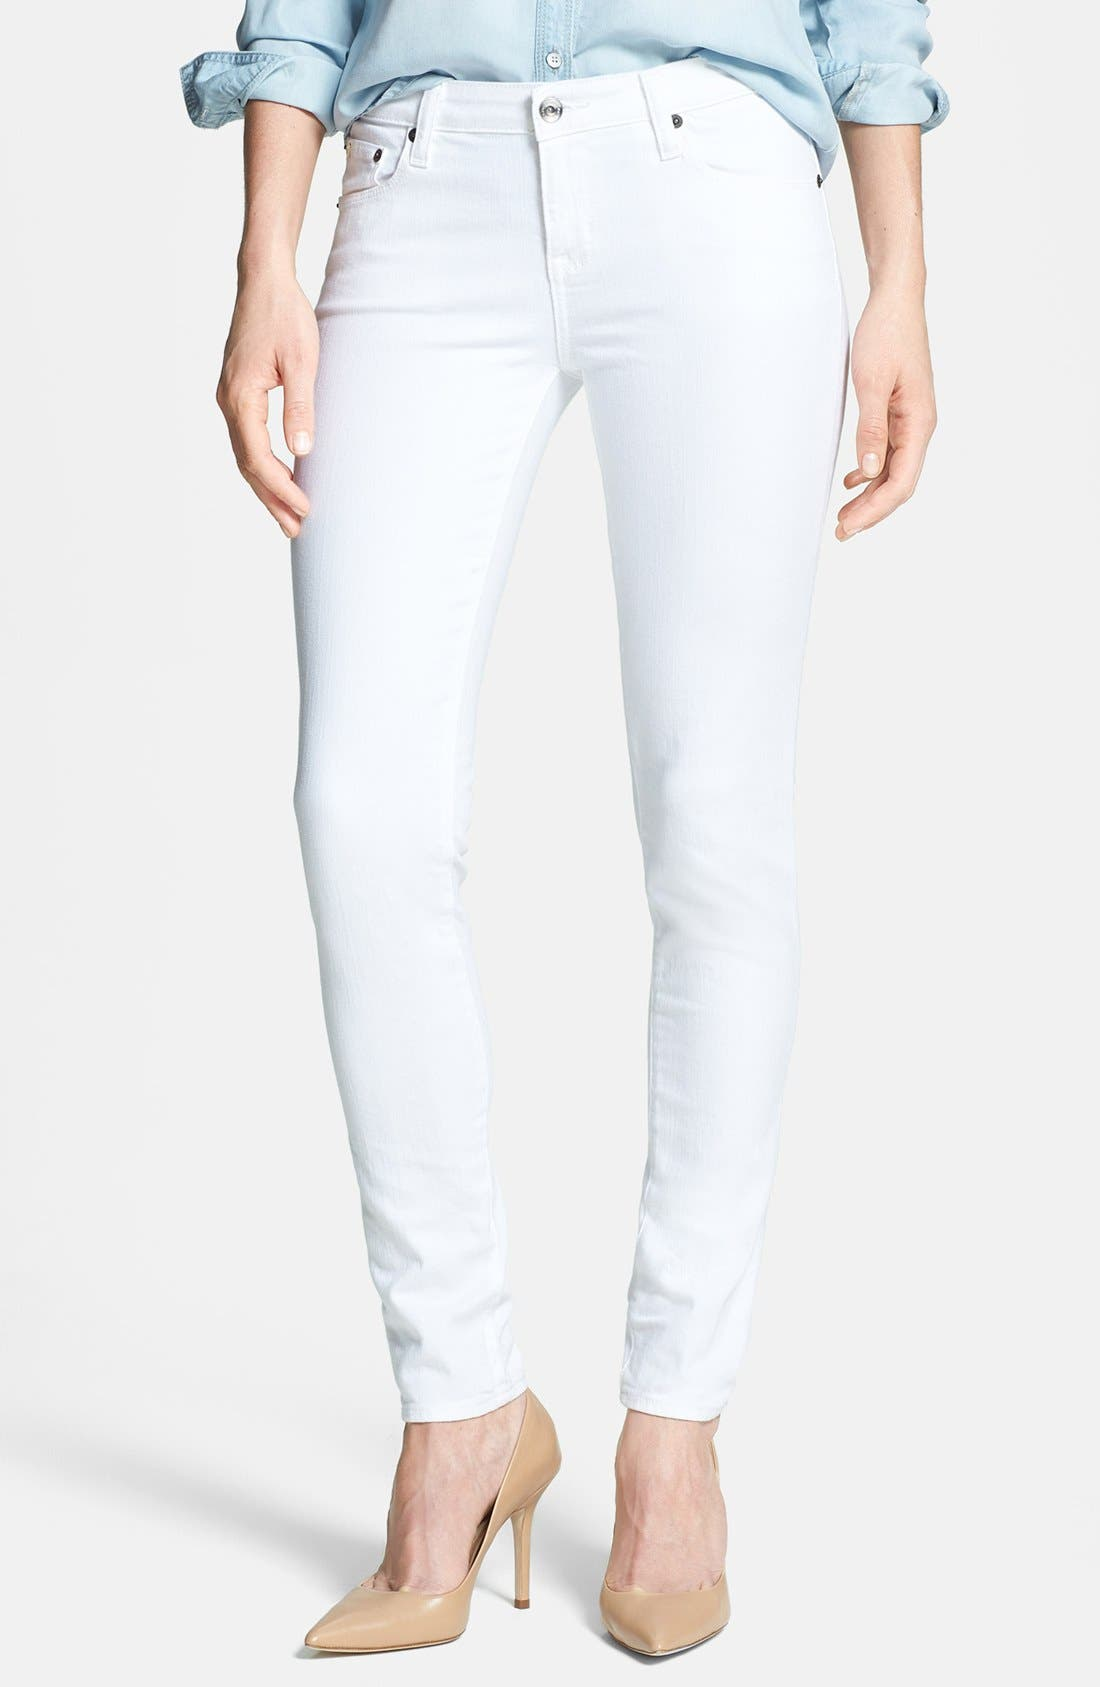 Main Image - Big Star 'Alex' Stretch Skinny Jeans (White)